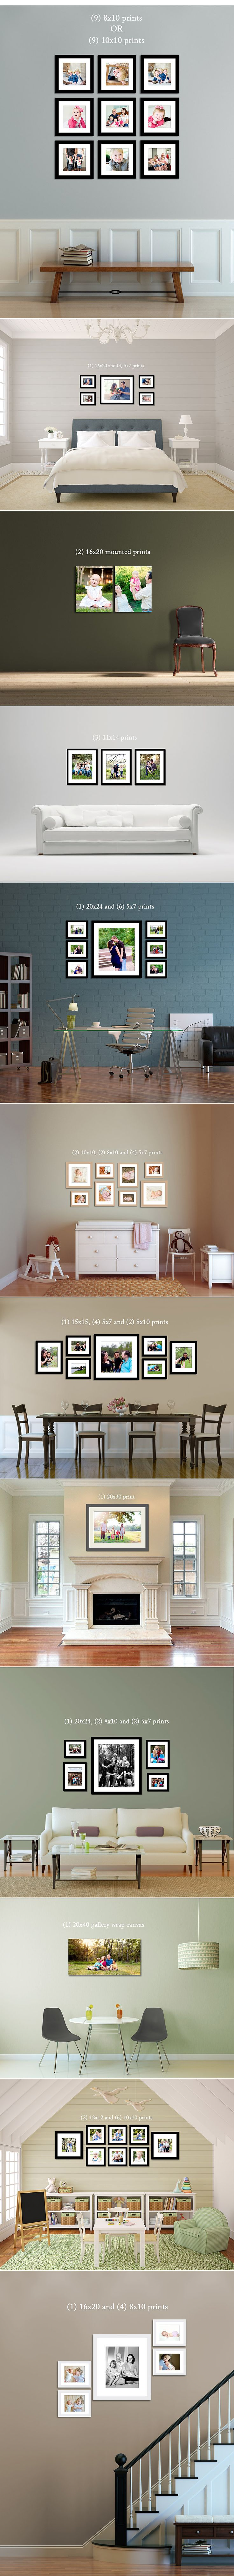 gallery print set ideas